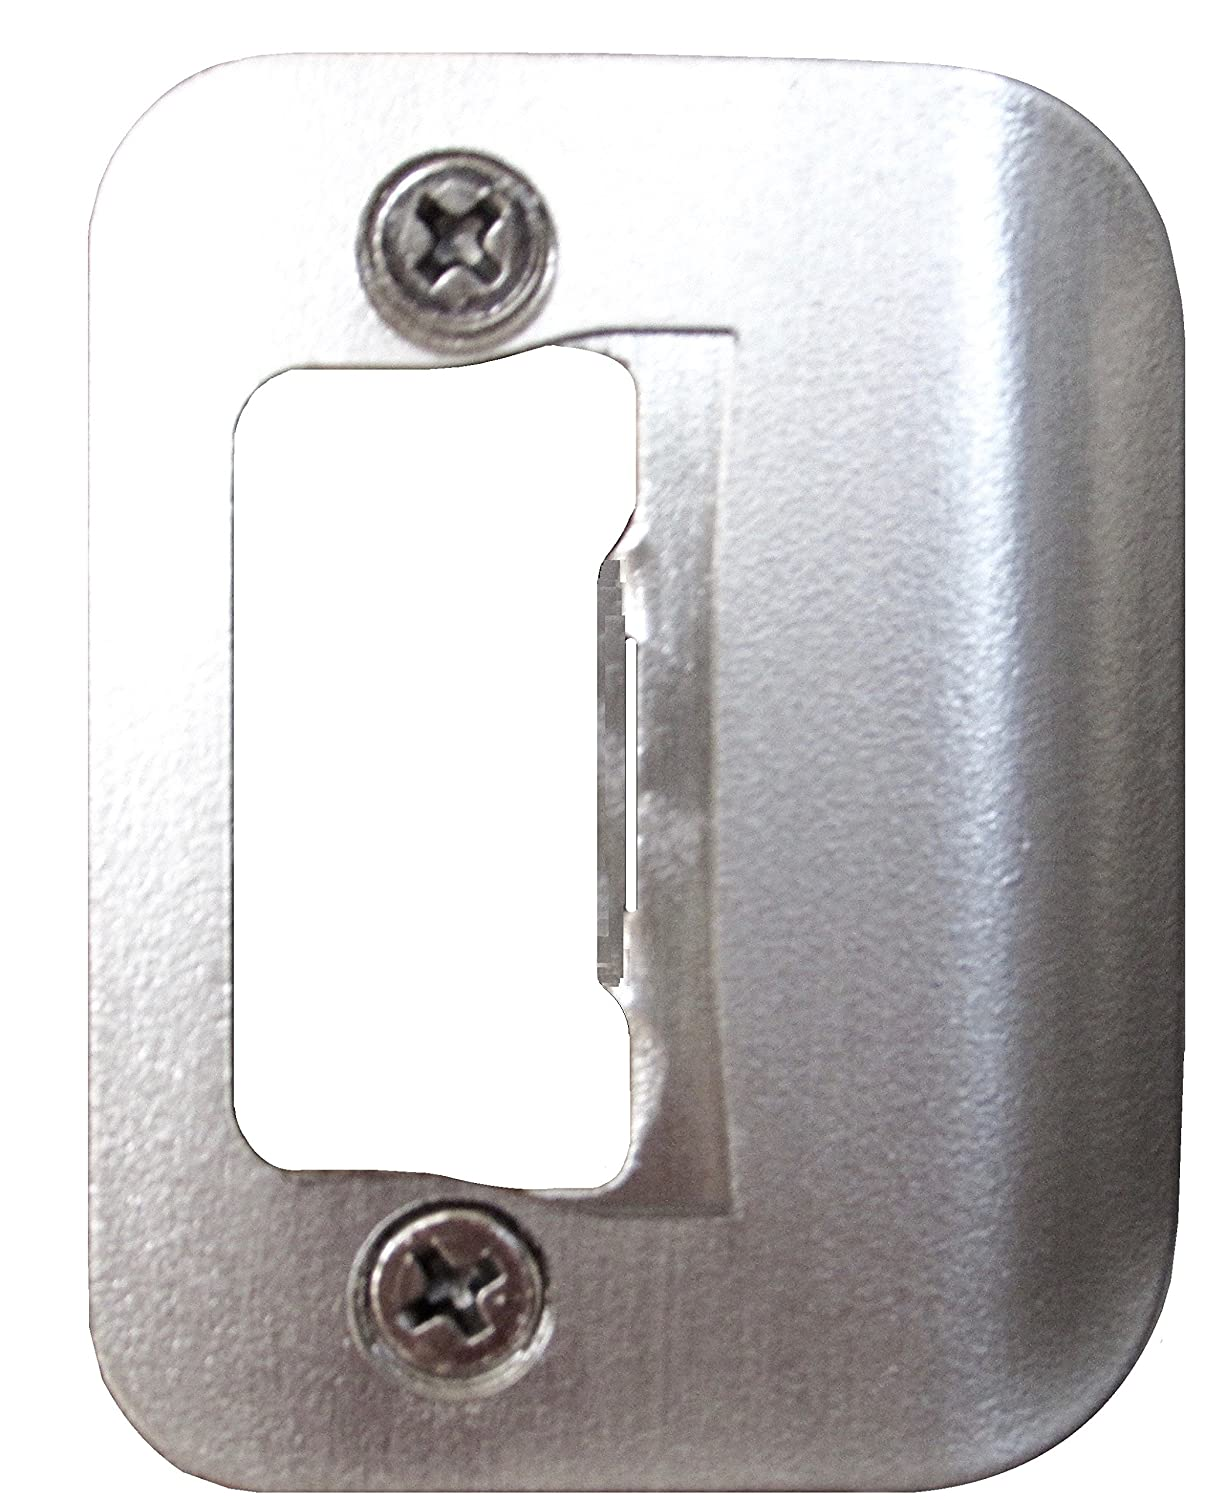 sc 1 st  Amazon.com & GATOR Door Latch Restorer - Strike Plate (Satin Nickel) - - Amazon.com